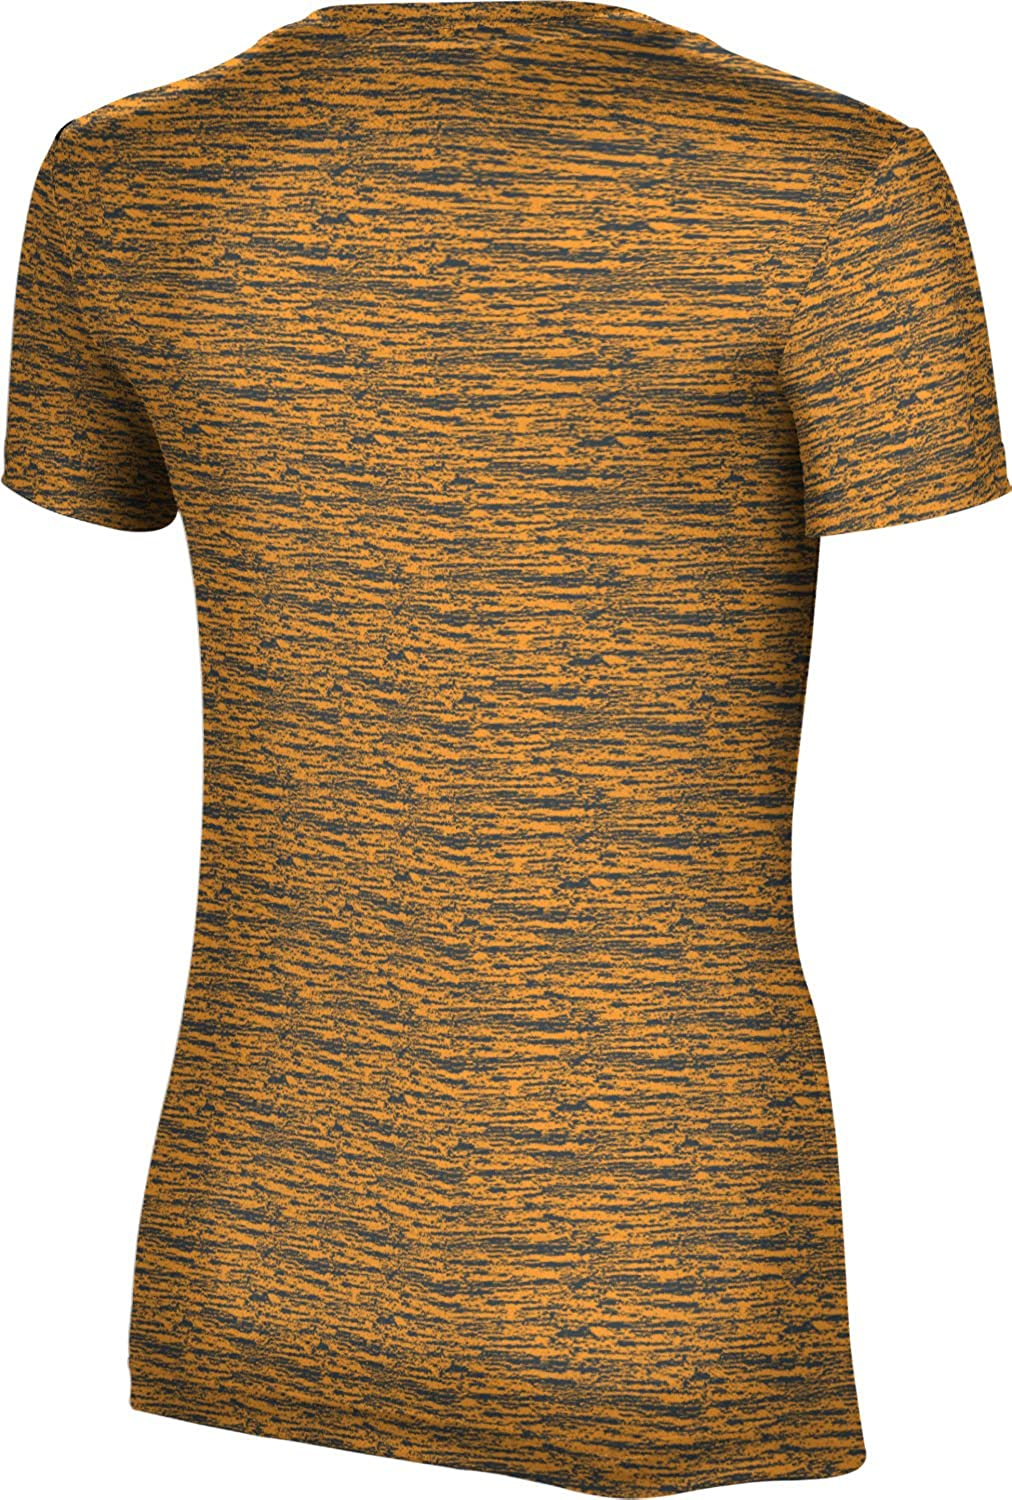 ProSphere Women's Fort Richardson Military Brushed Tech Tee